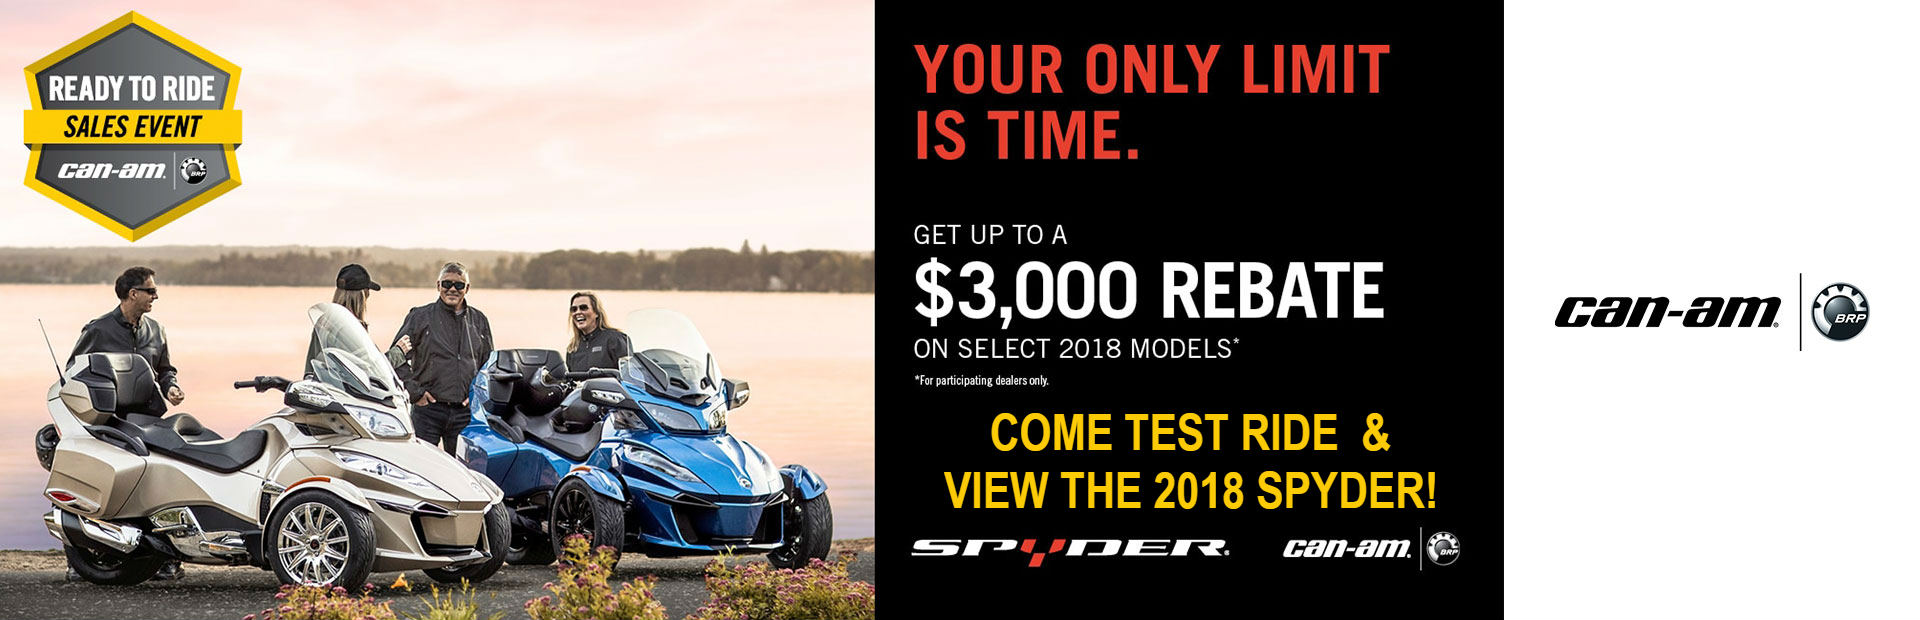 Ready to Ride Sales Event - 2018 Models (Spyder)